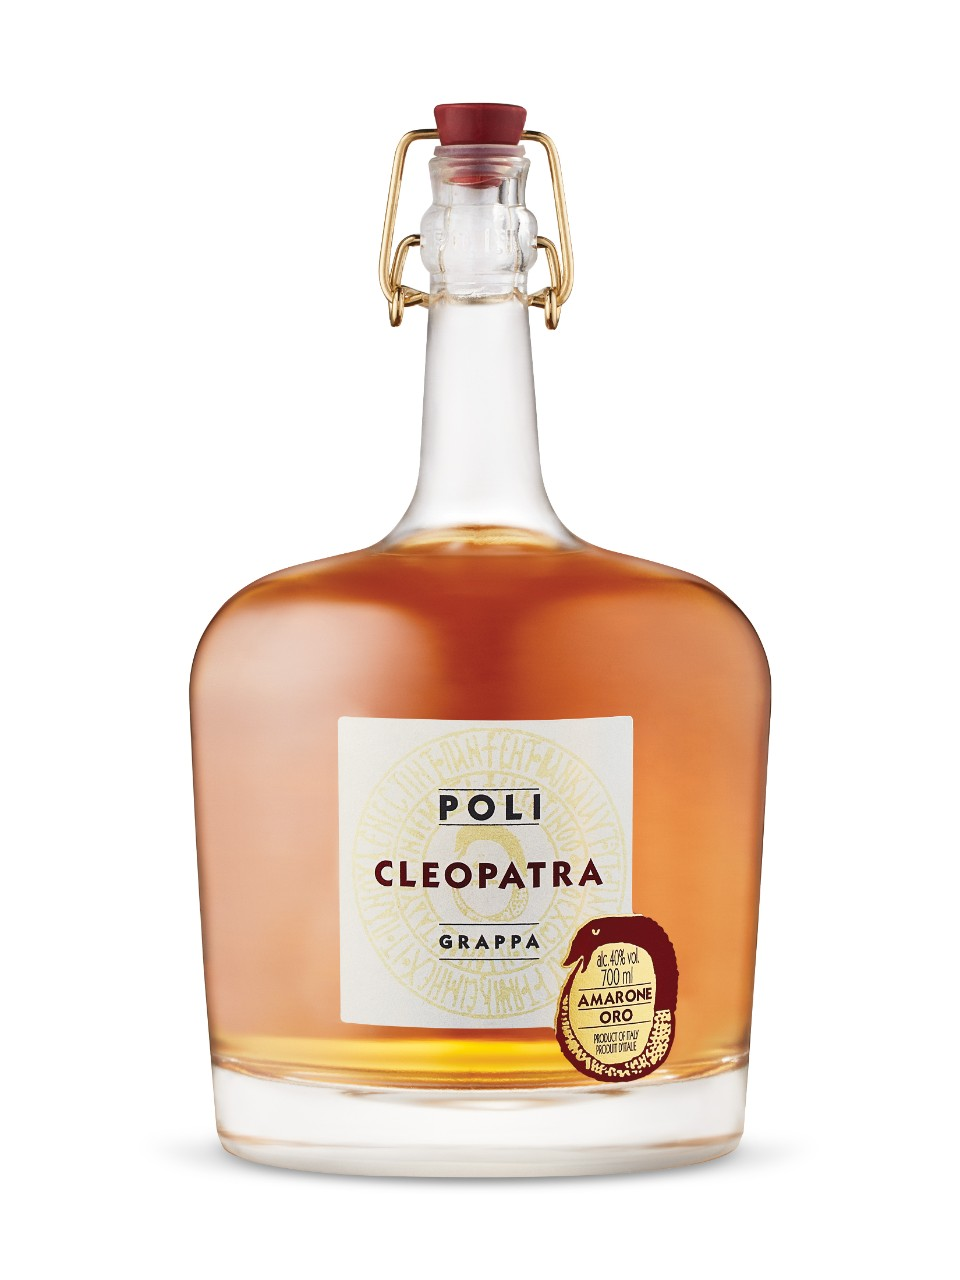 Image for Jacopo Poli Cleopatra Amarone Oro Grappa from LCBO